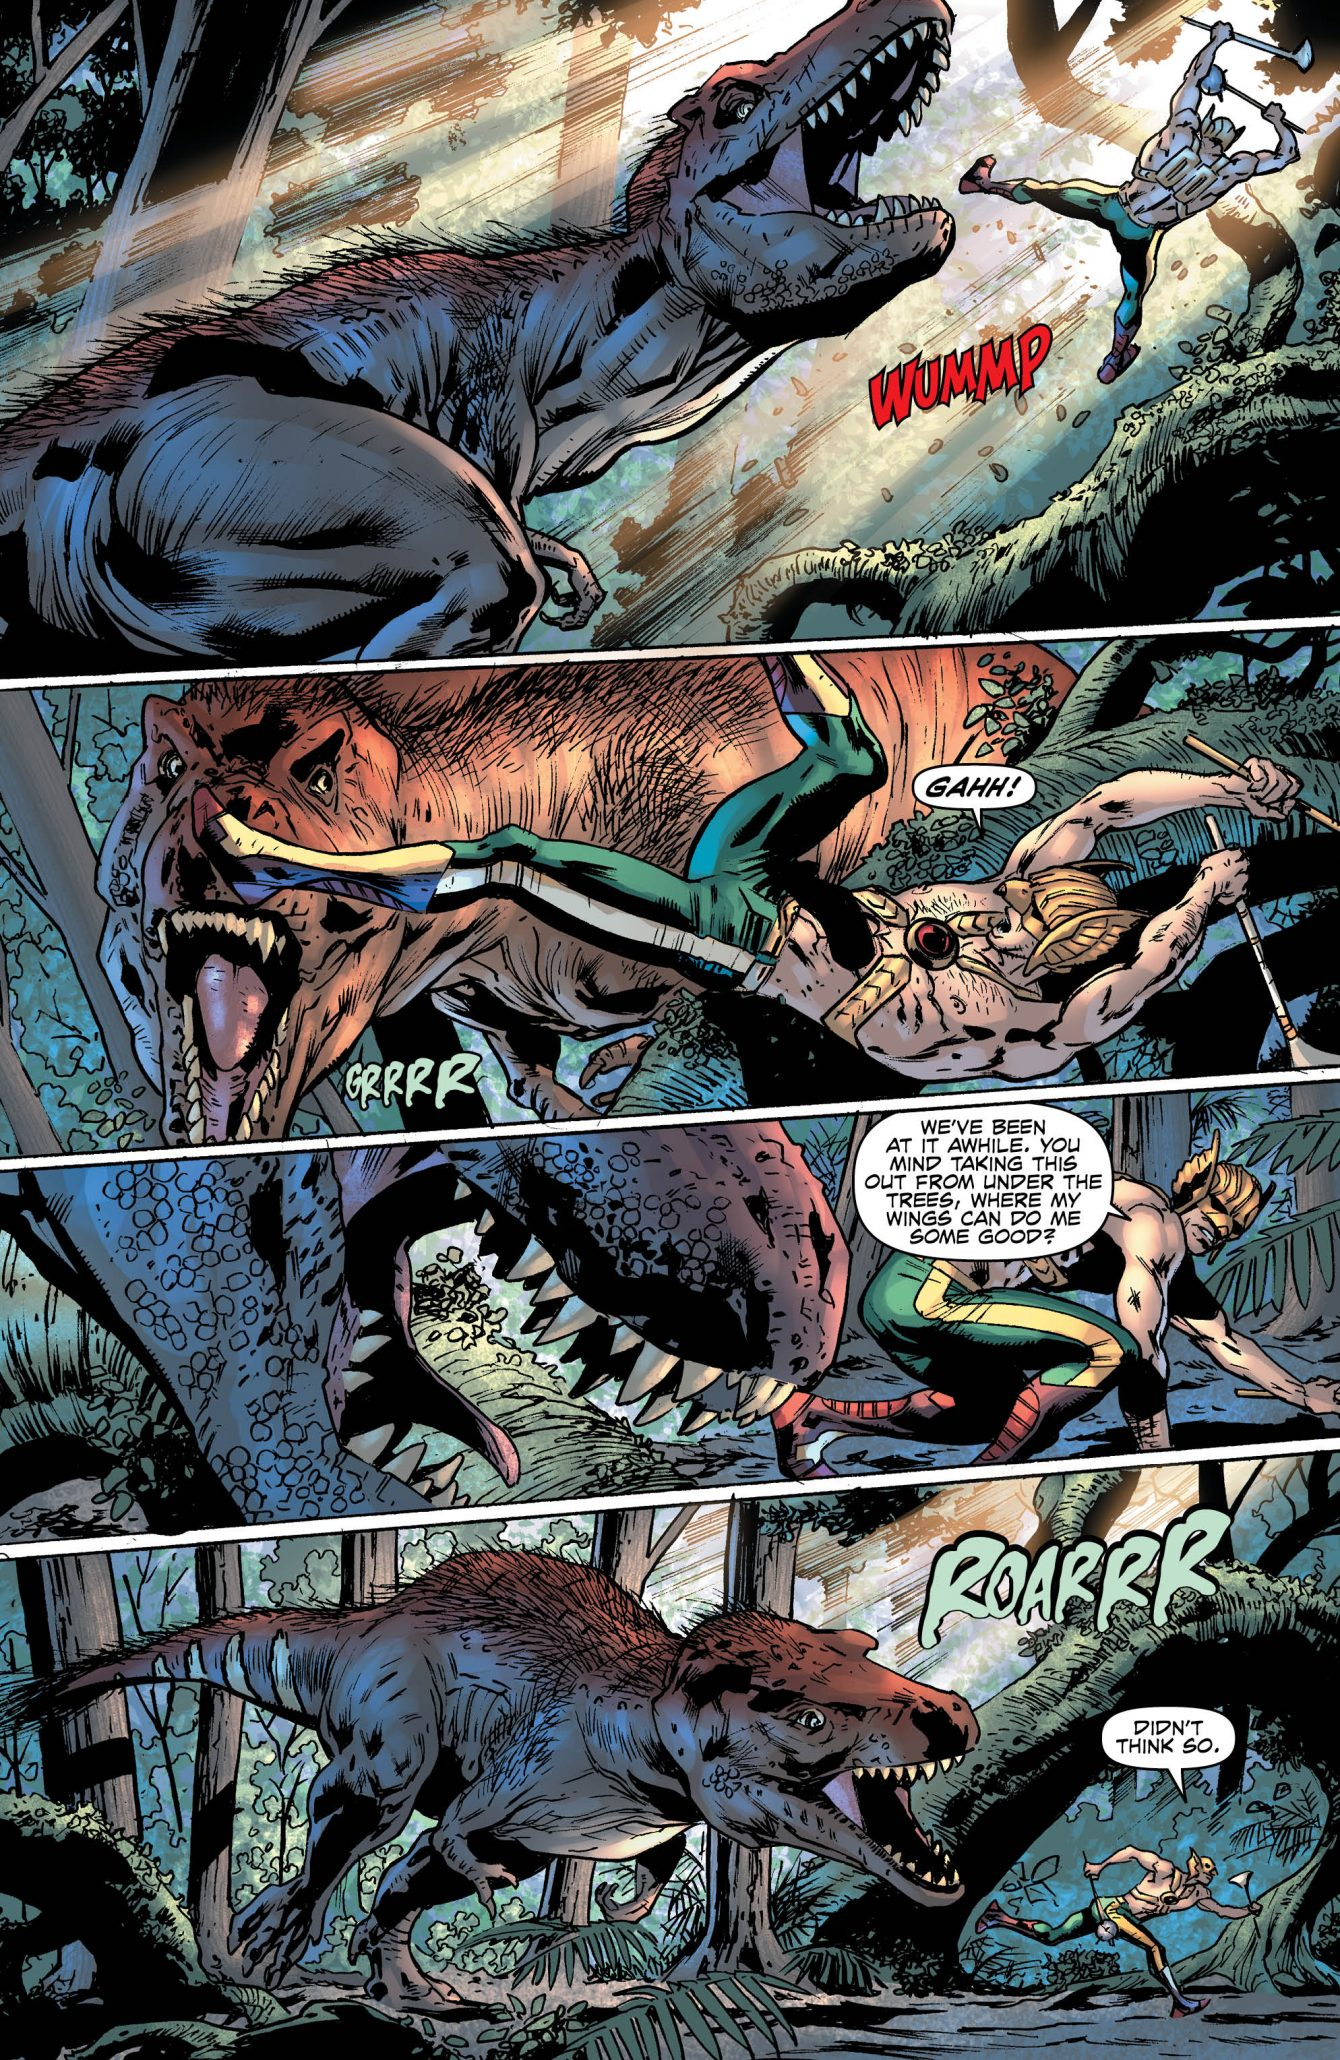 Hawkman #3 Preview Page - DC Comics